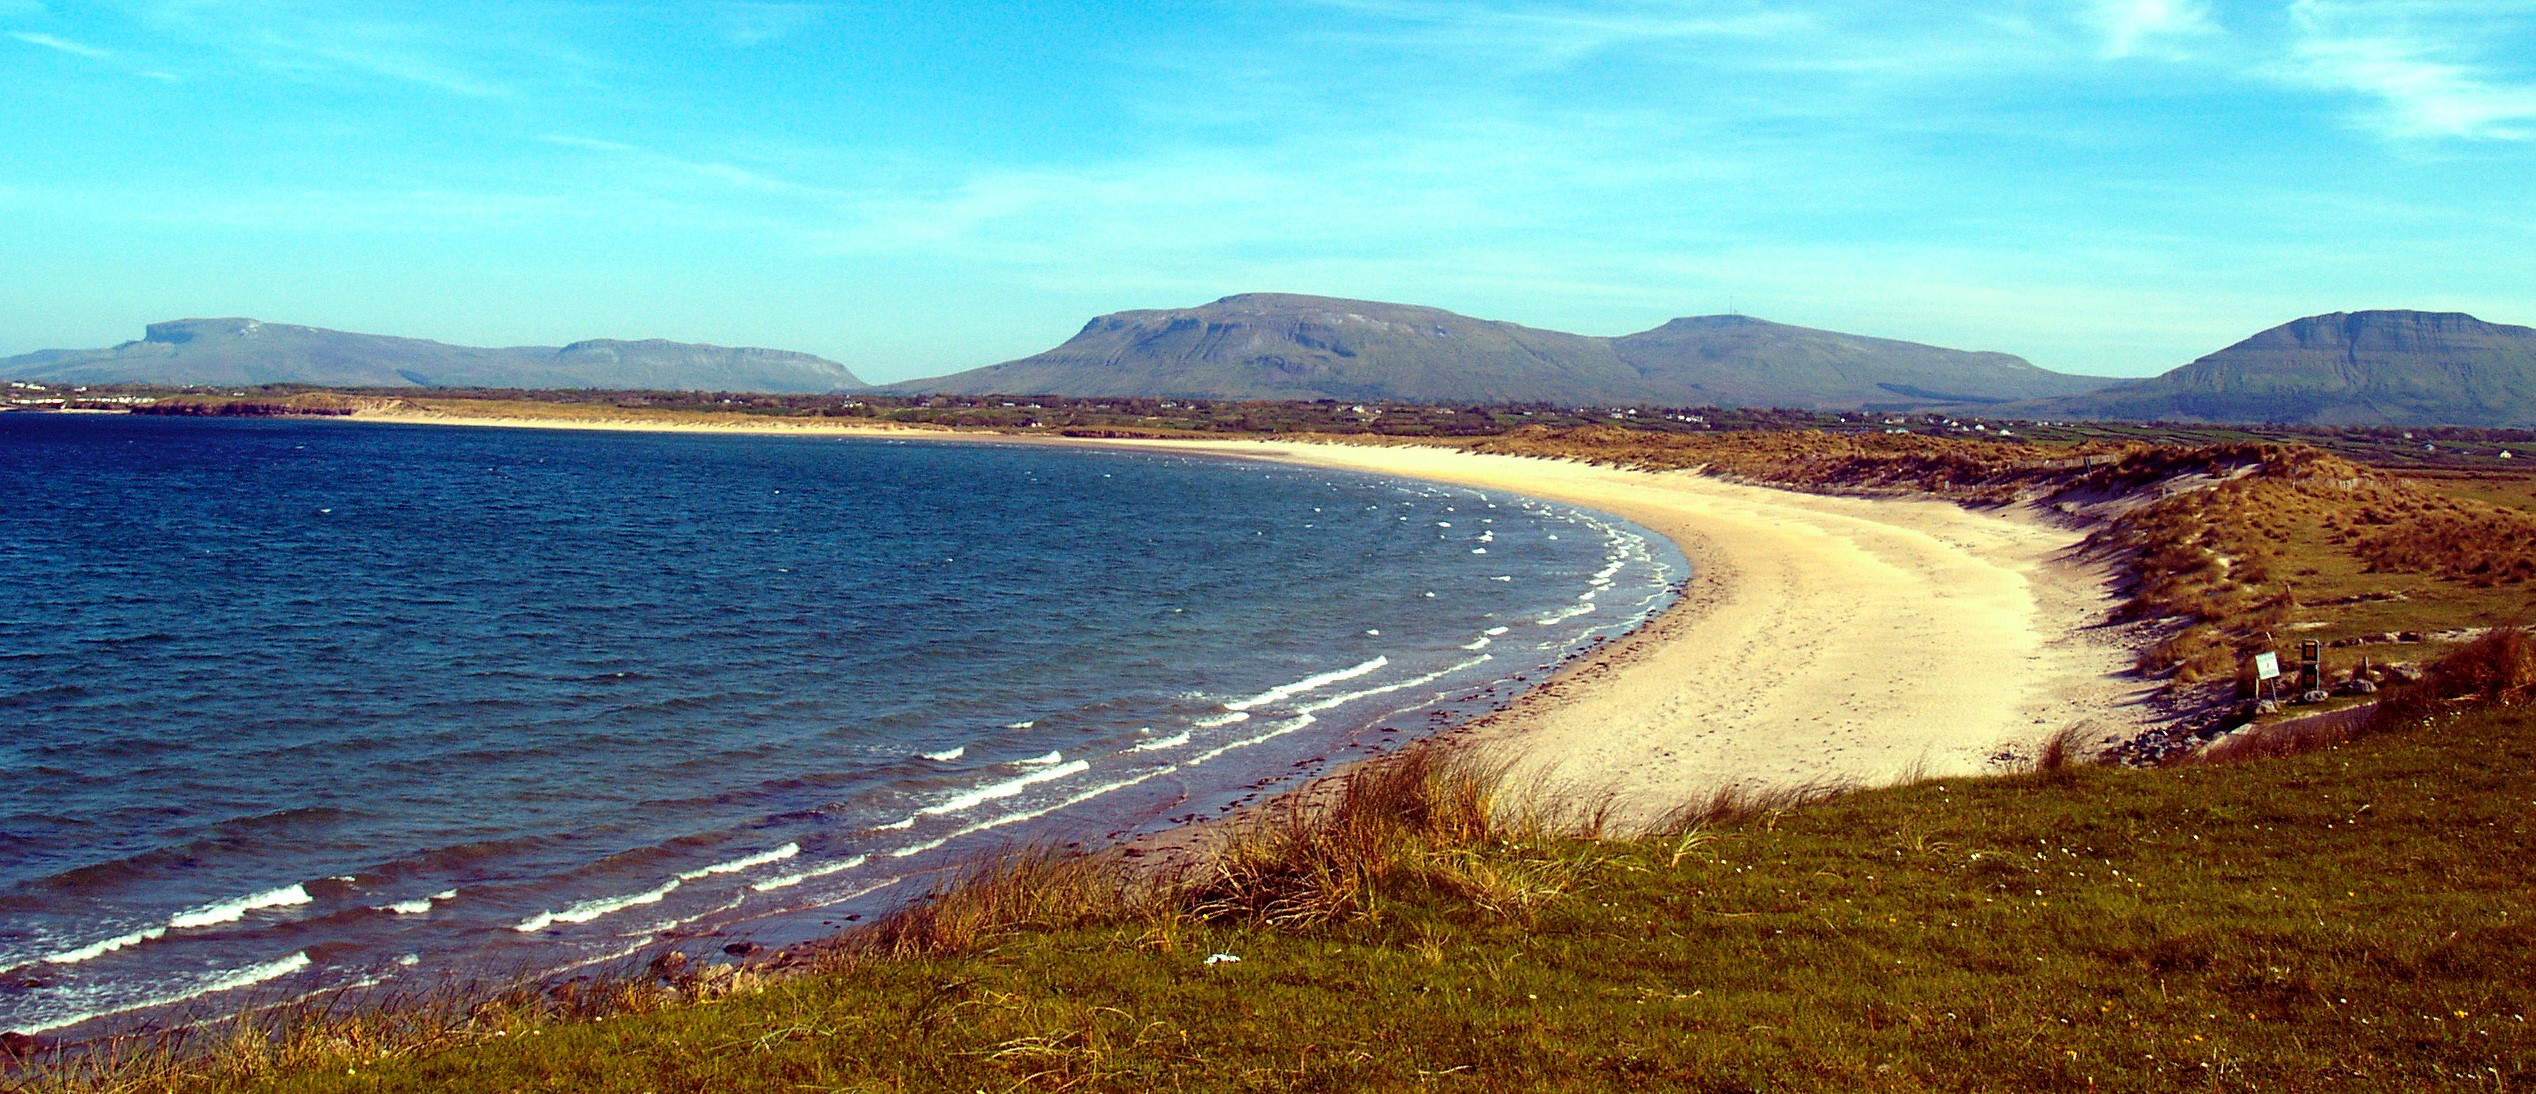 Mullaghmore Beach Sligo